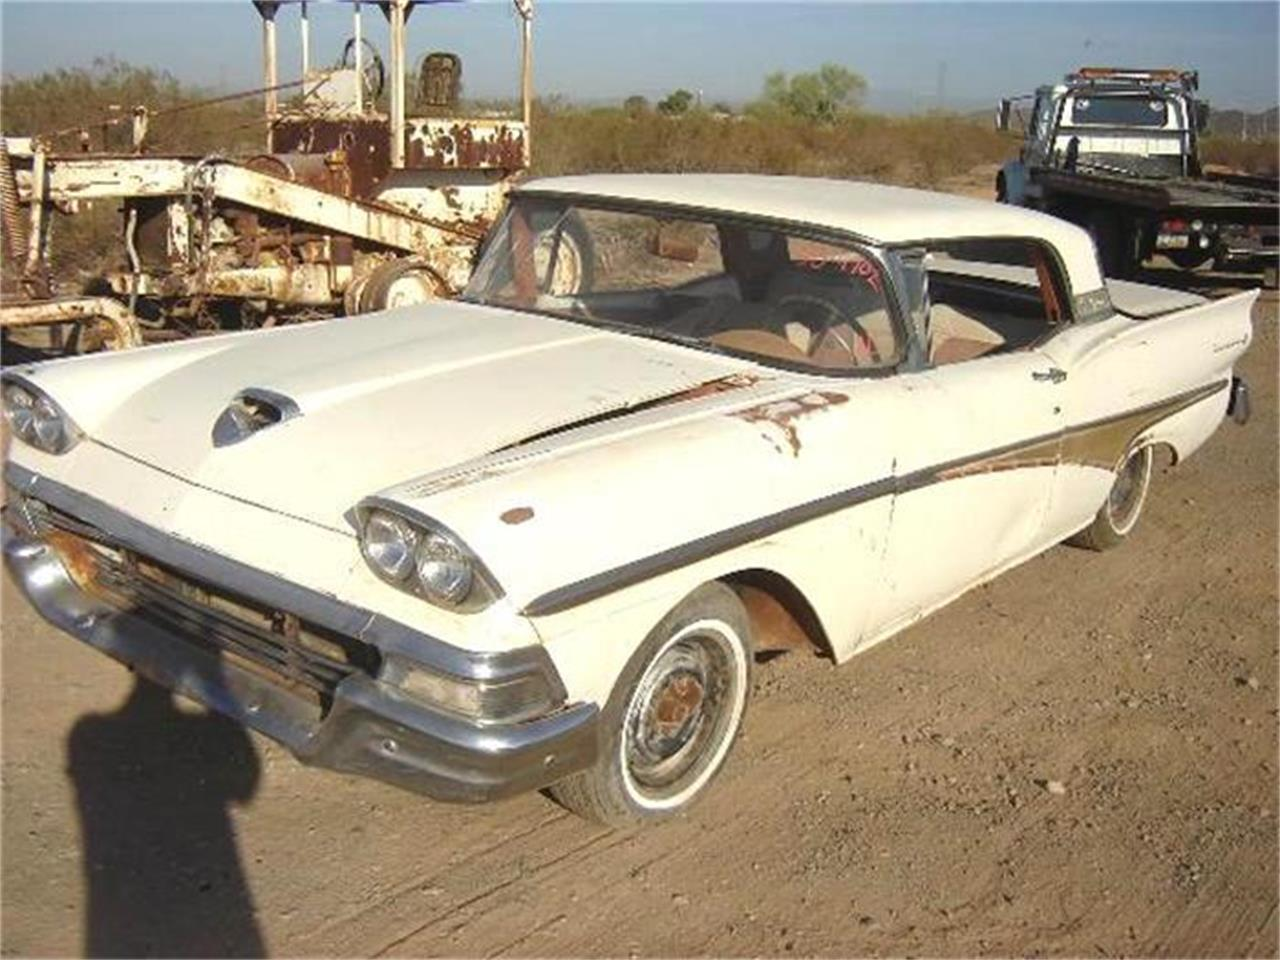 Large picture of 58 fairlane 8iey